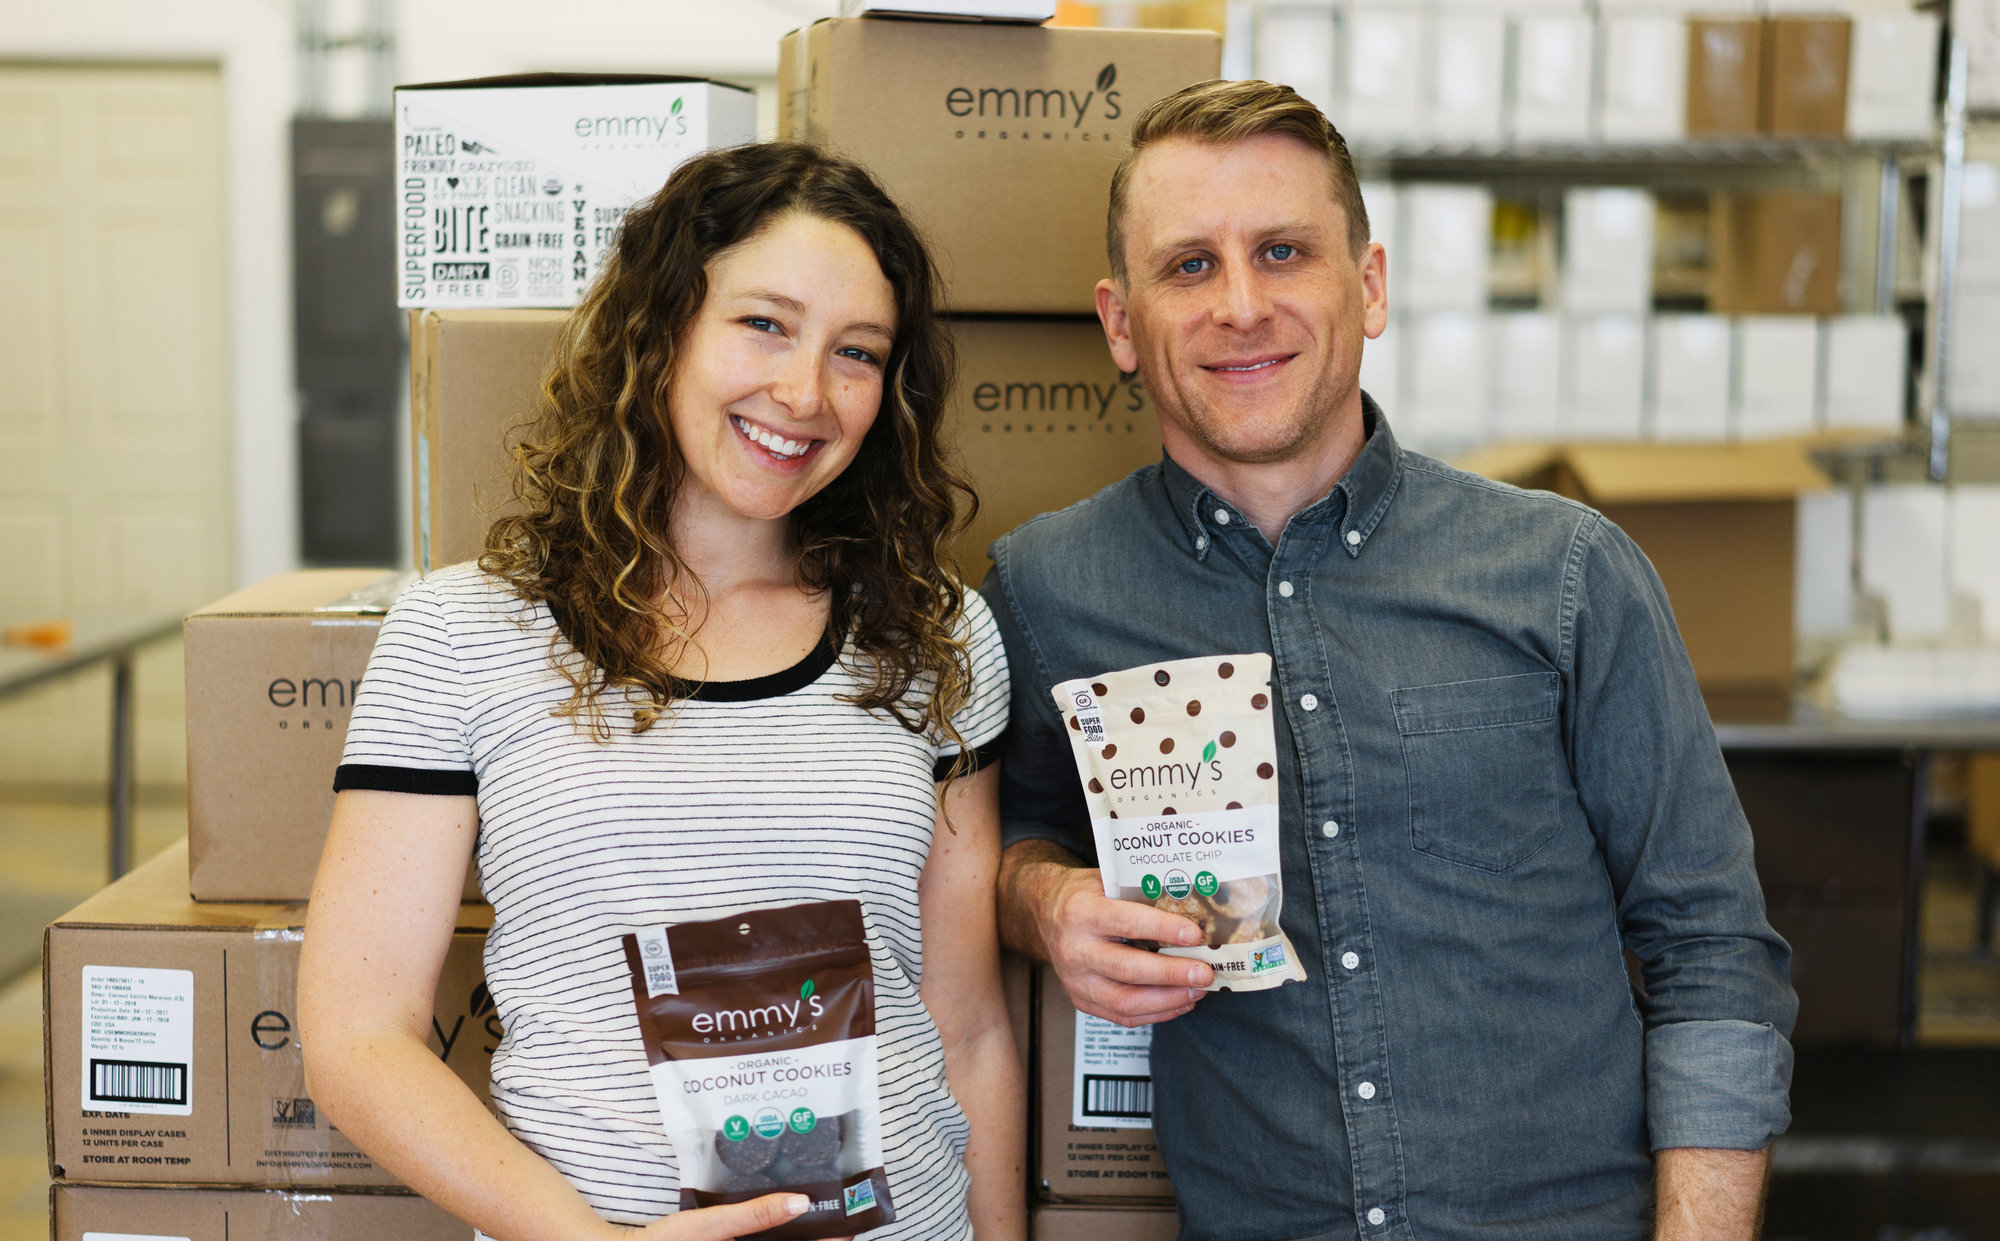 Emmy's Organics creators Samantha Abrams (left) and Ian Gaffney (right) with their signature organic, gluten-free, non-GMO coconut cookies. The two started the company after creating a cookie Gaffney could enjoy with his dietary restrictions.